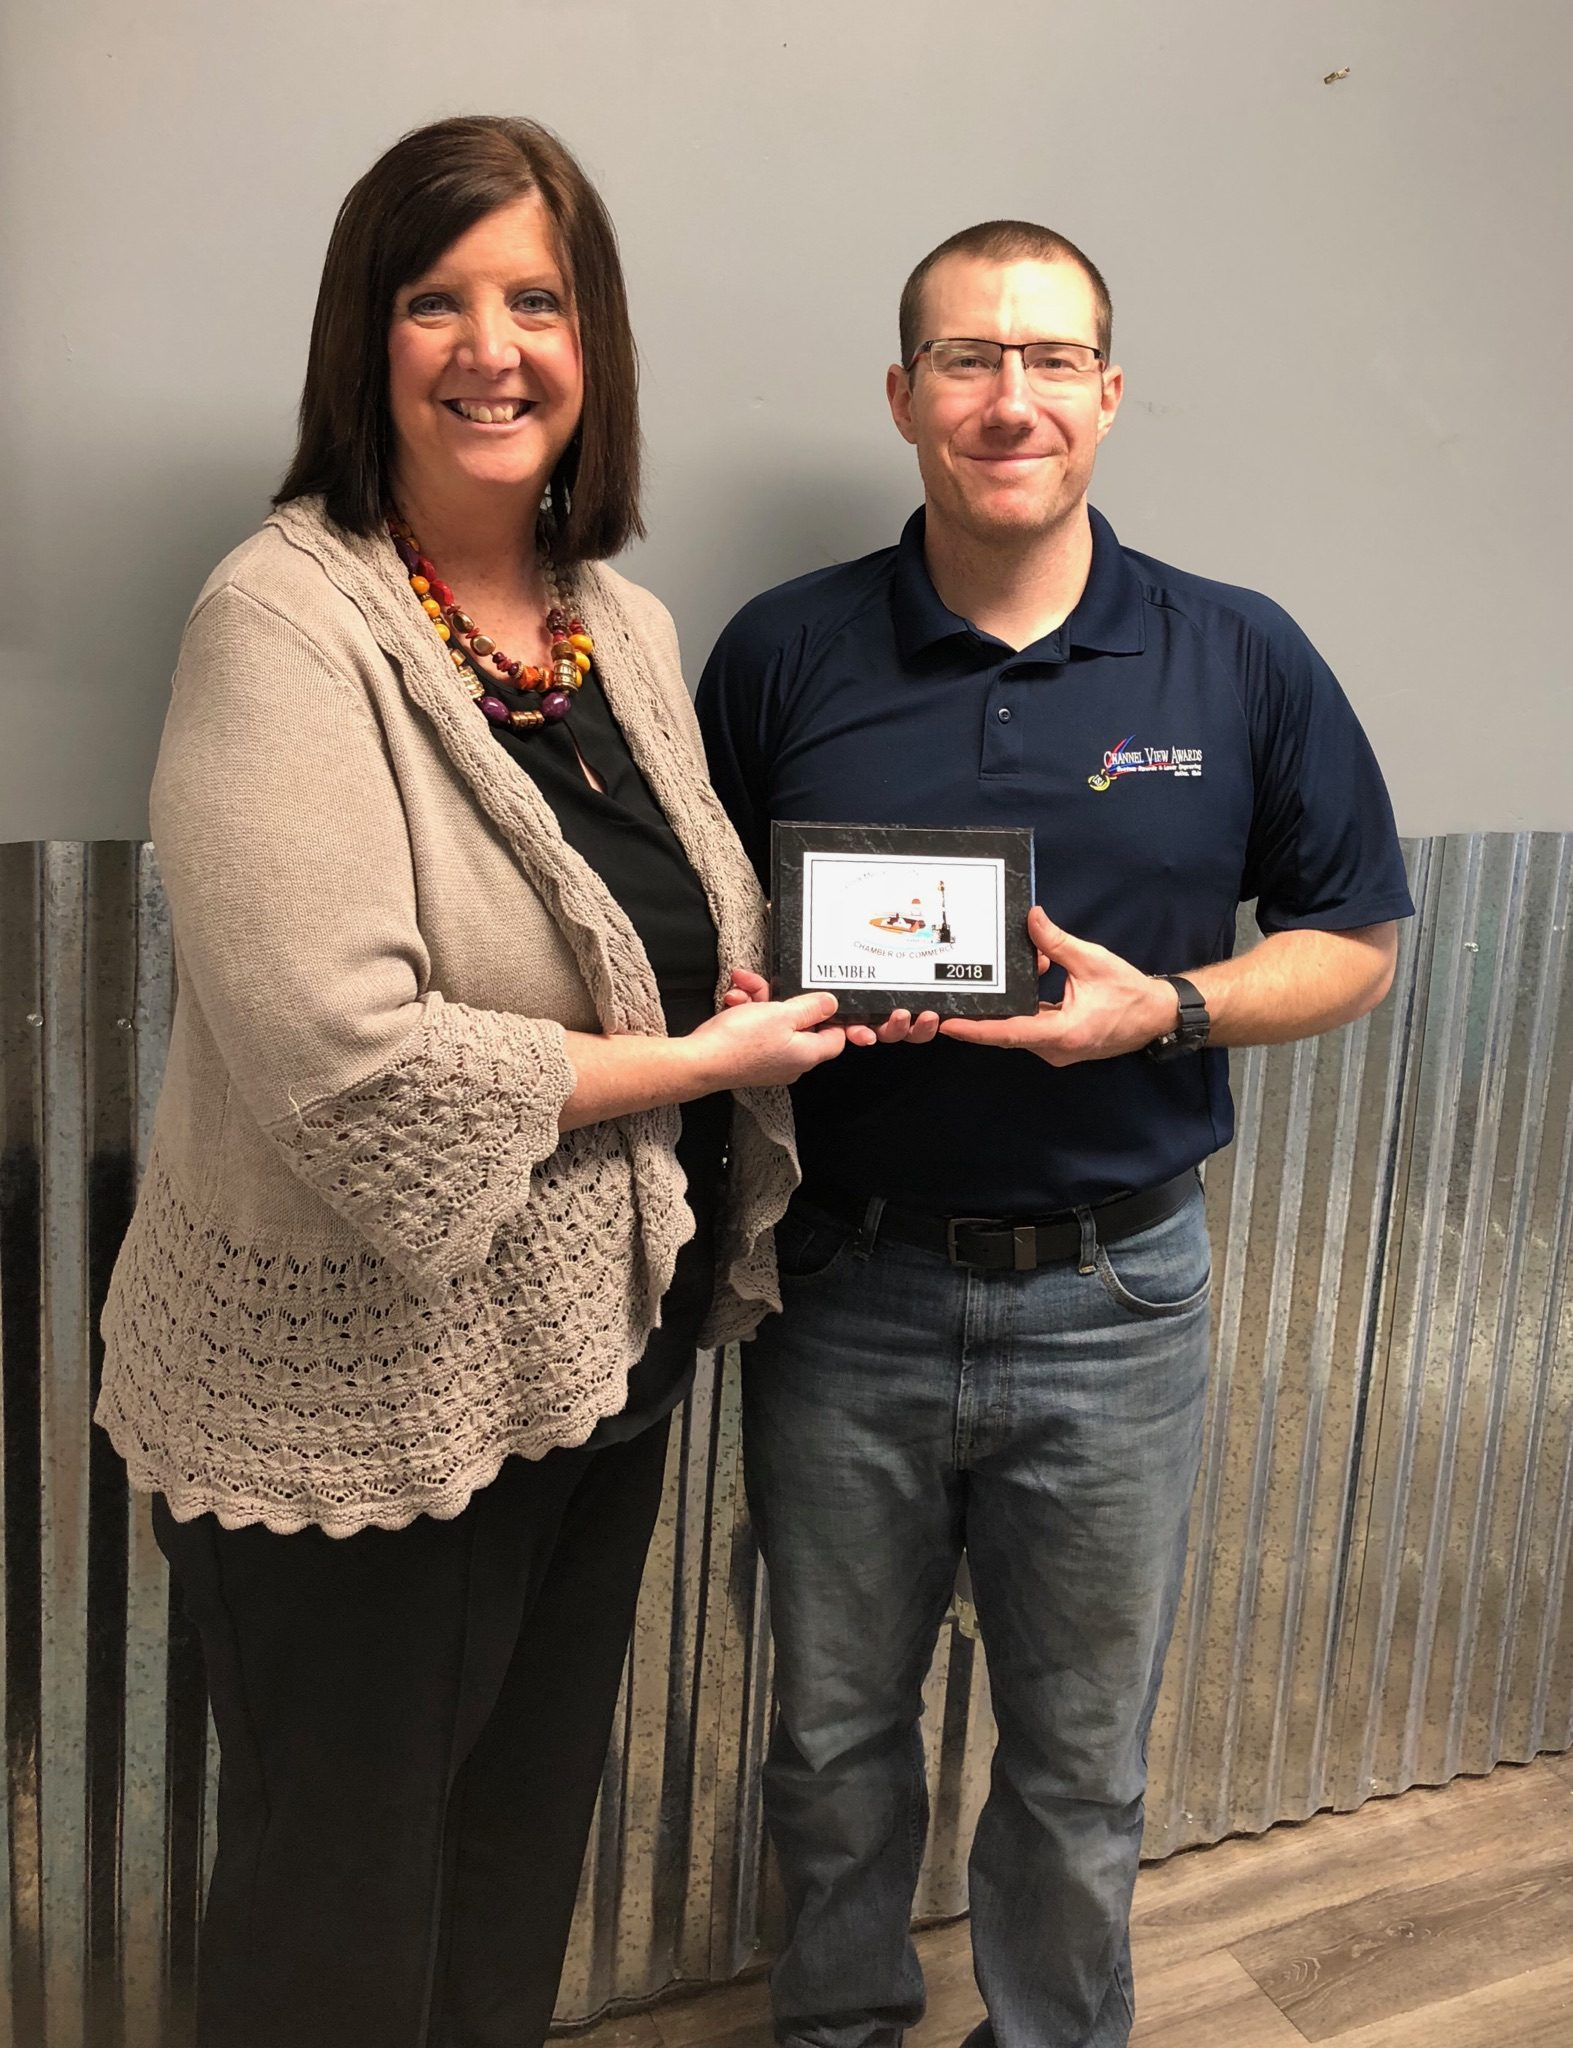 Channel View Awards joins Chamber